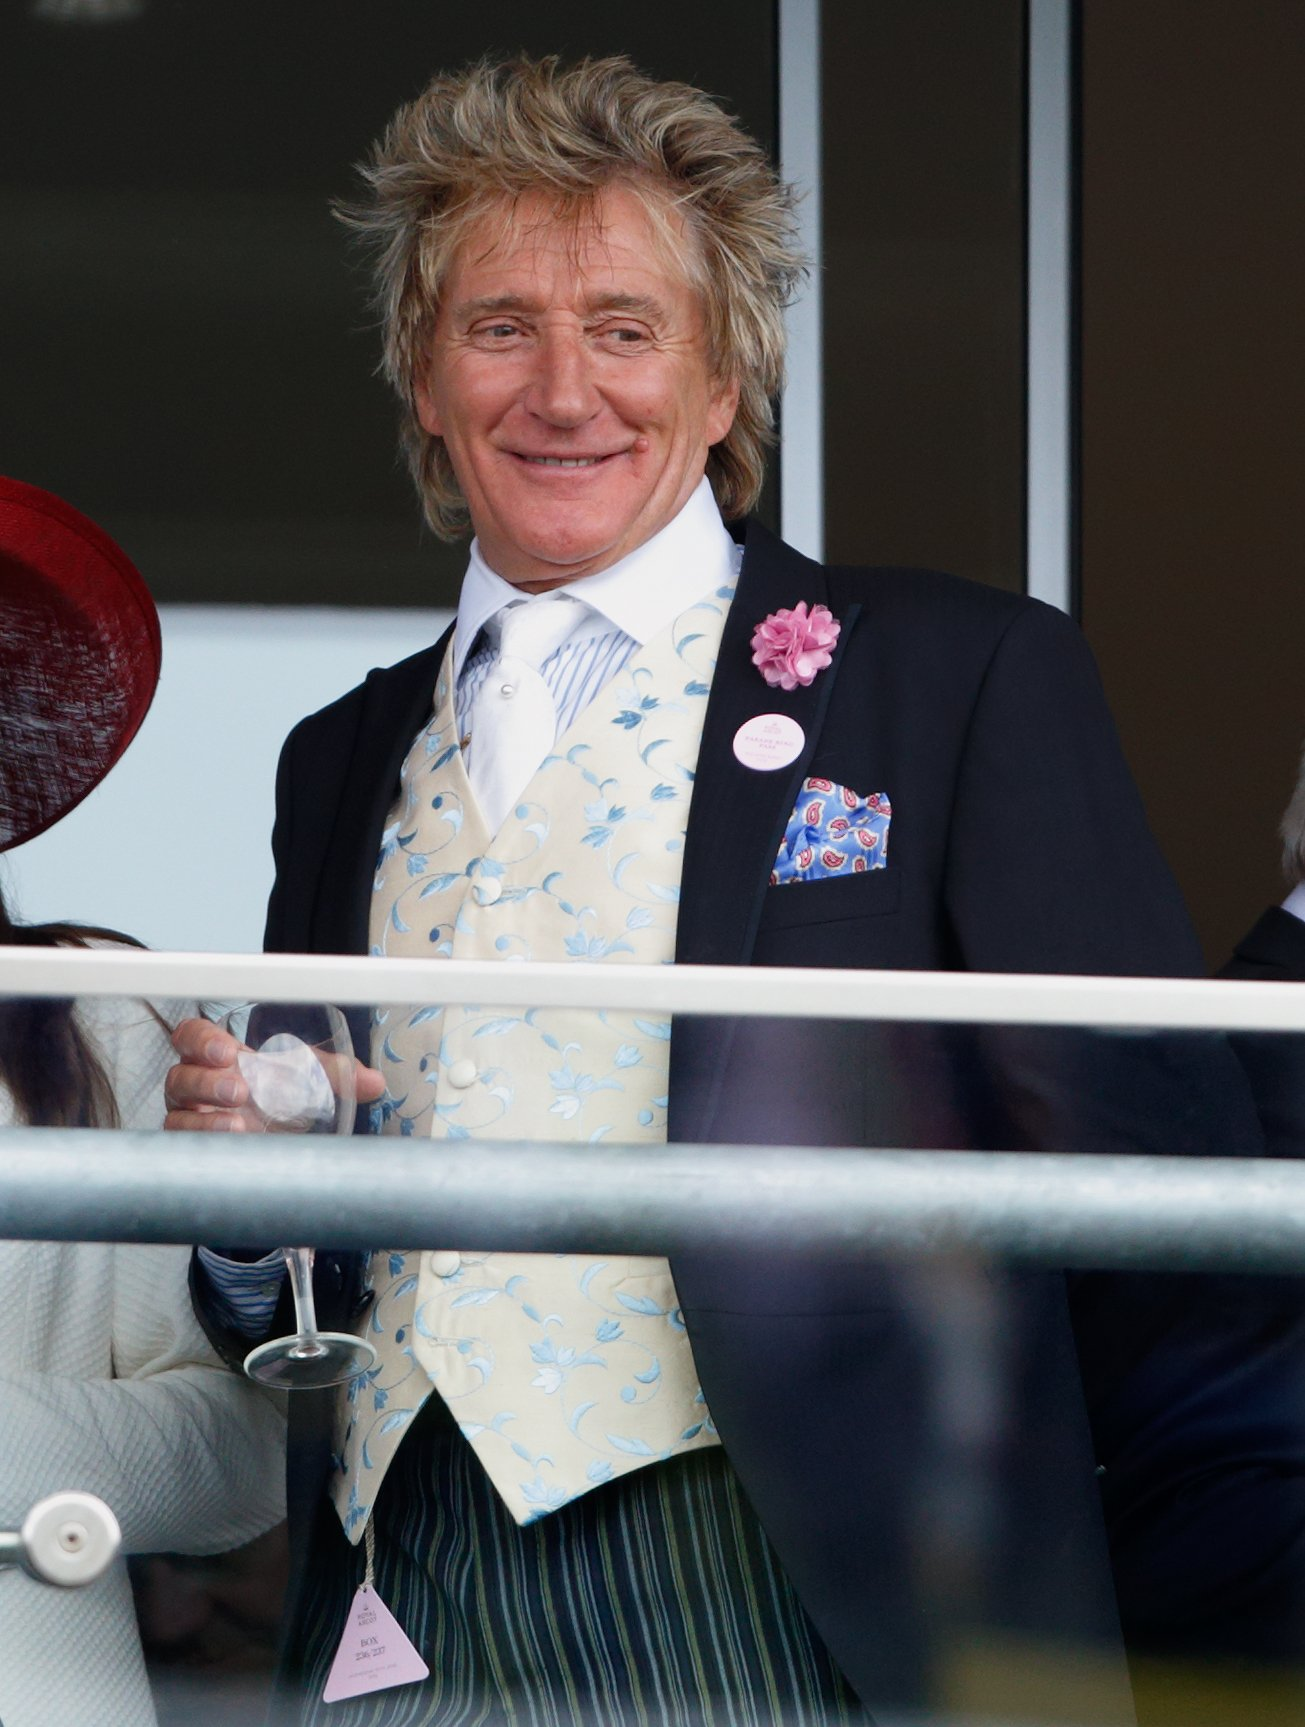 Sir Rod Stewart on June 15, 2016 in Ascot, England | Source: Getty Images